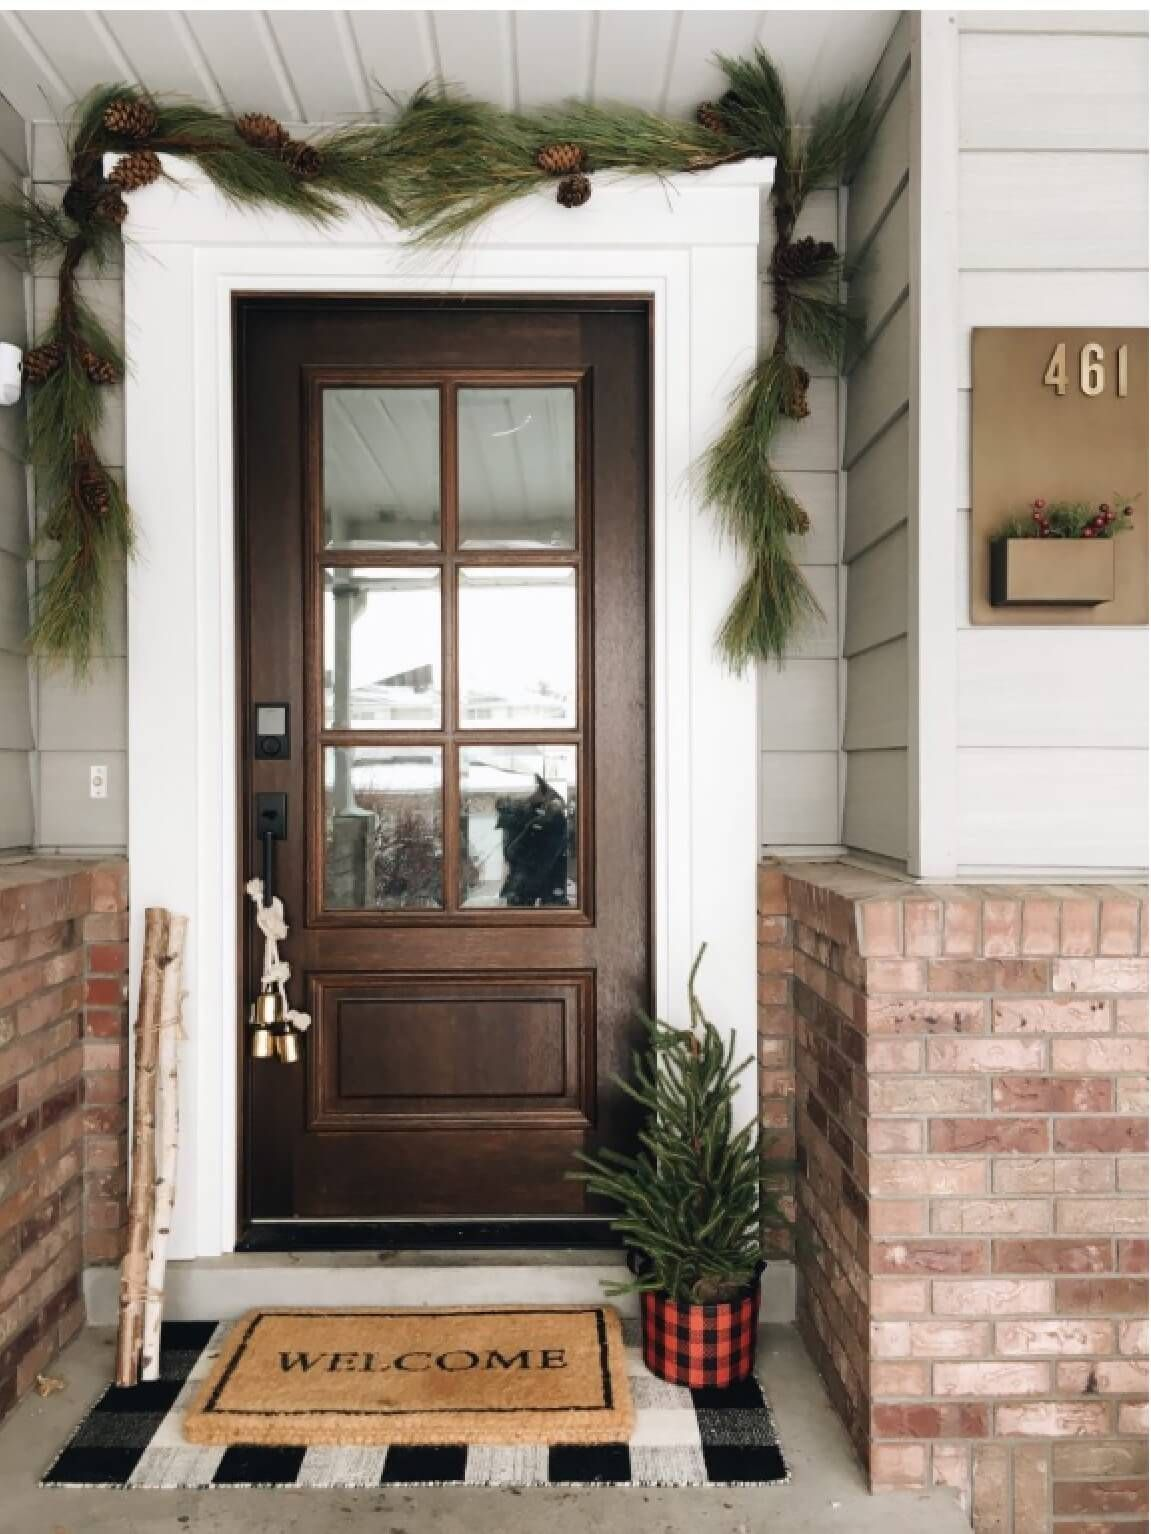 Decor door and window   beautiful farmhouse front door entrance decor and design ideas